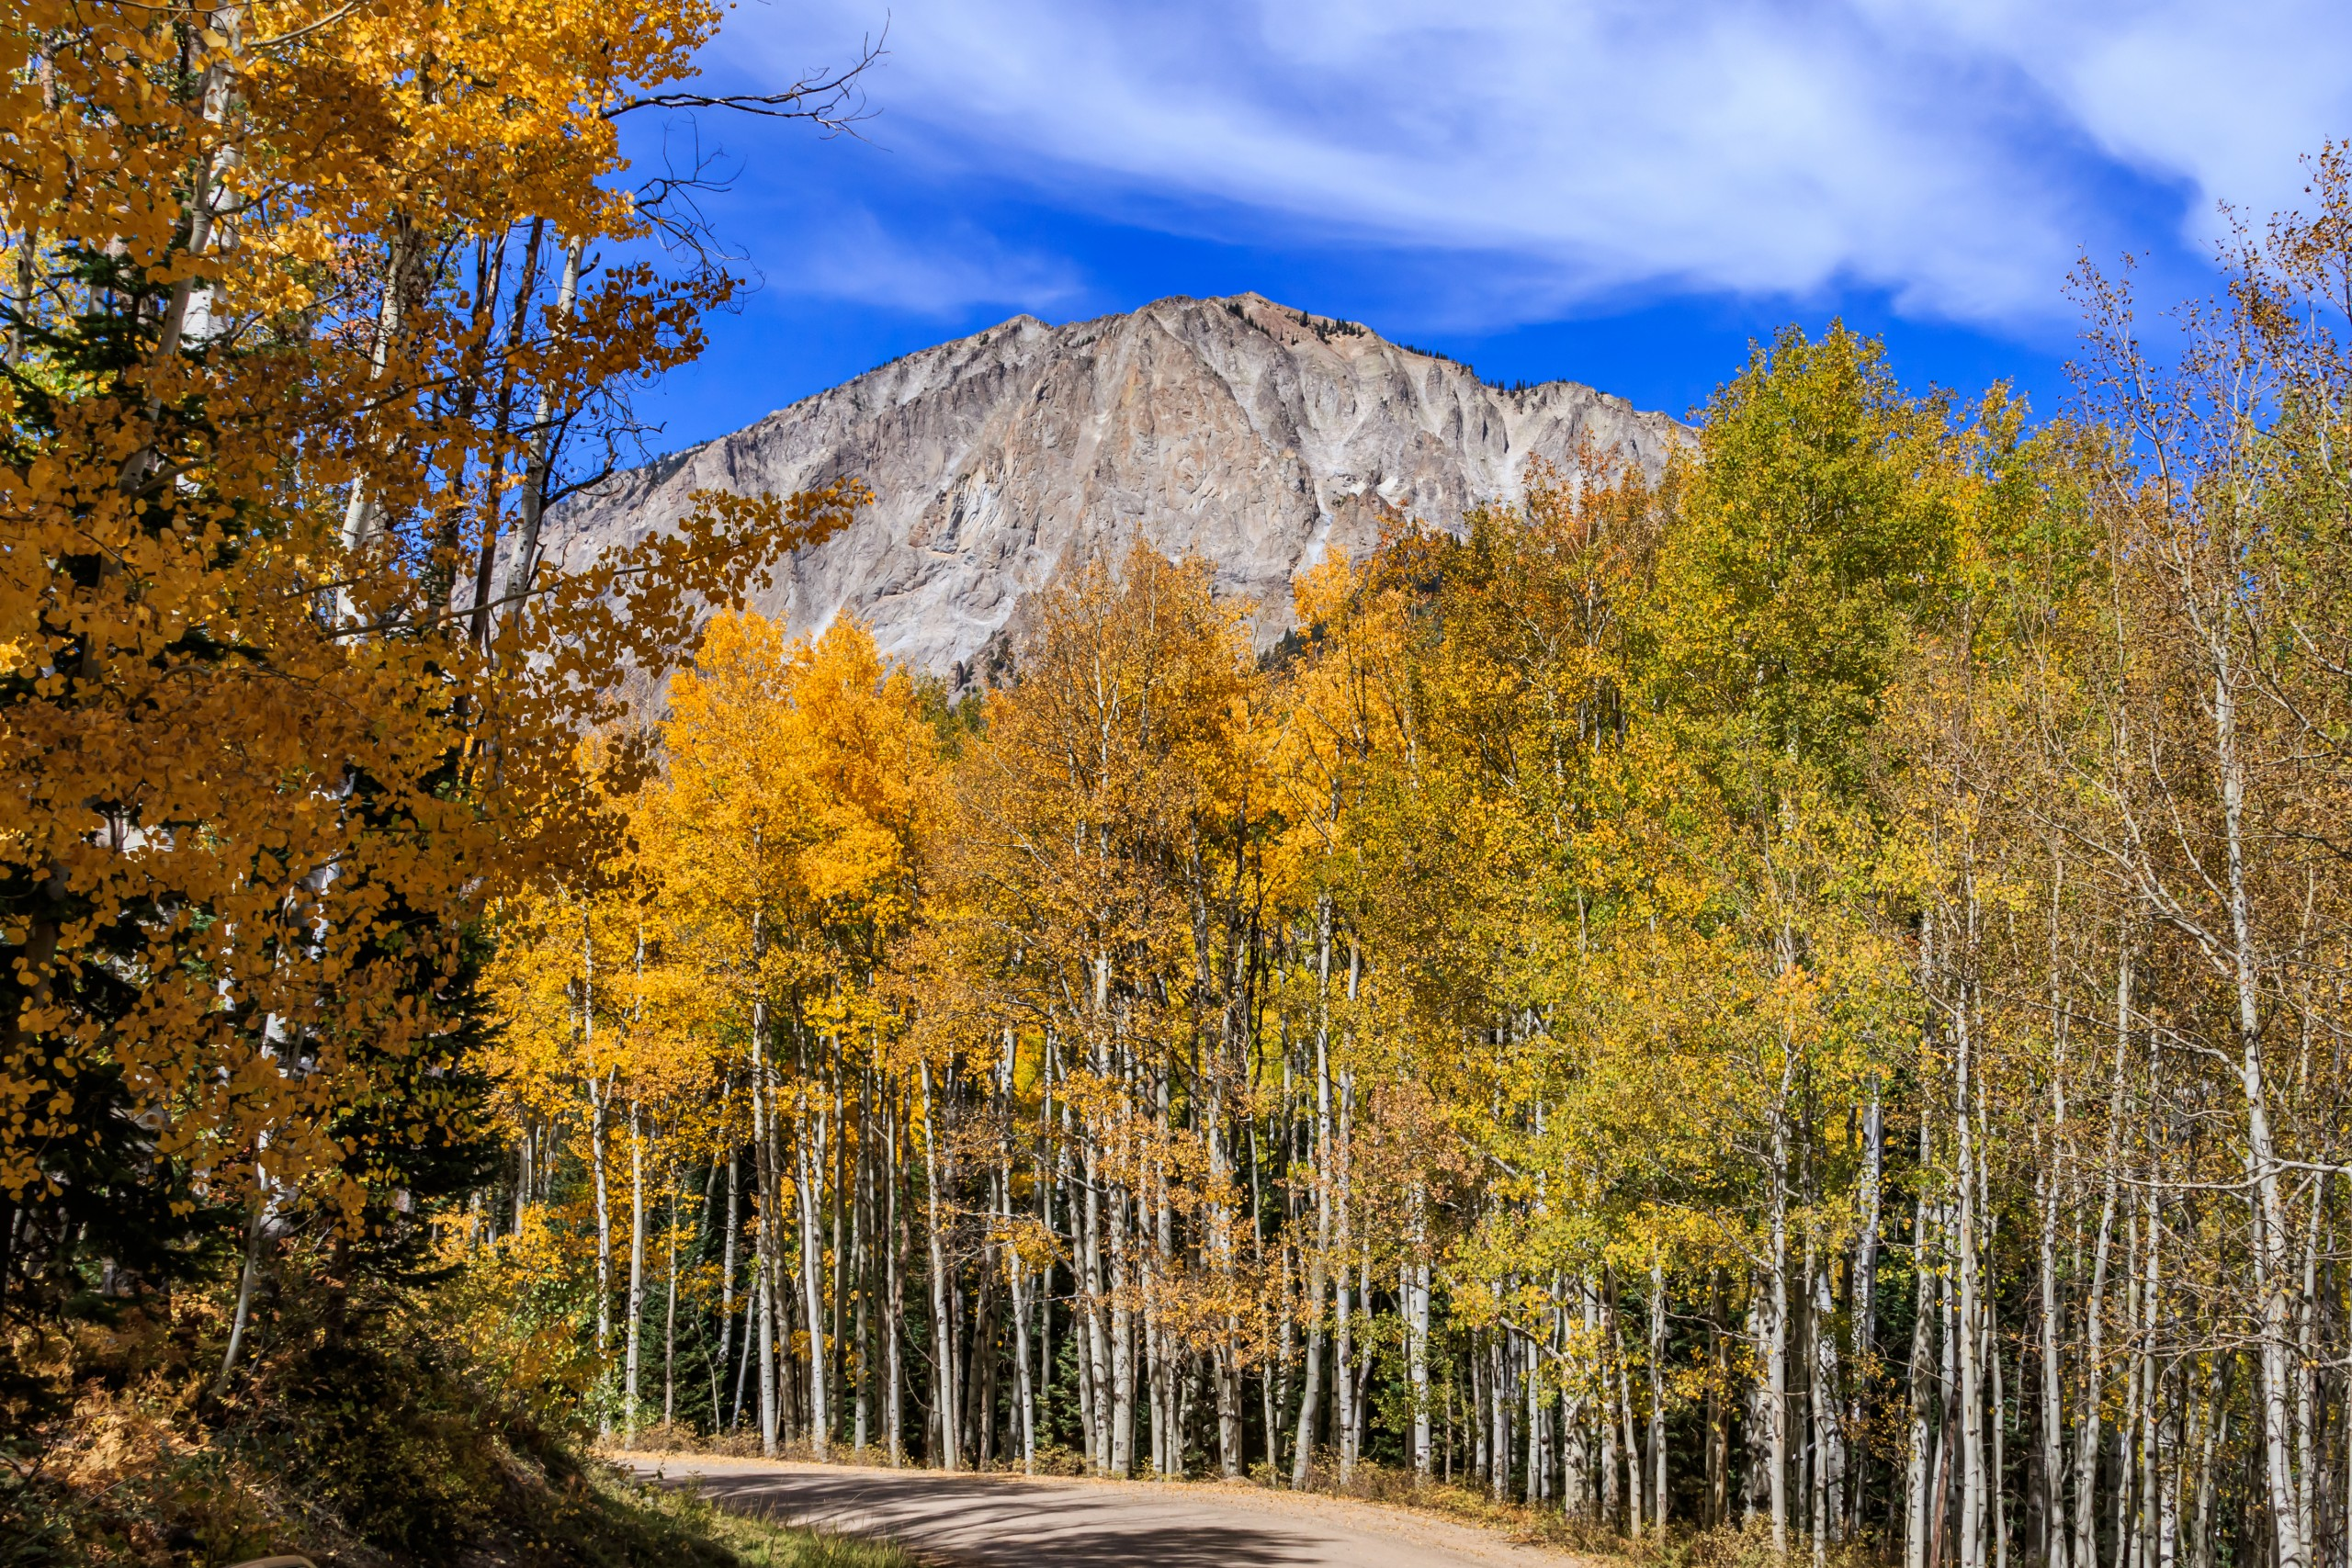 Aspen,forest,and,autumn,scenery,in,kebler,pass,,gunnison,county,